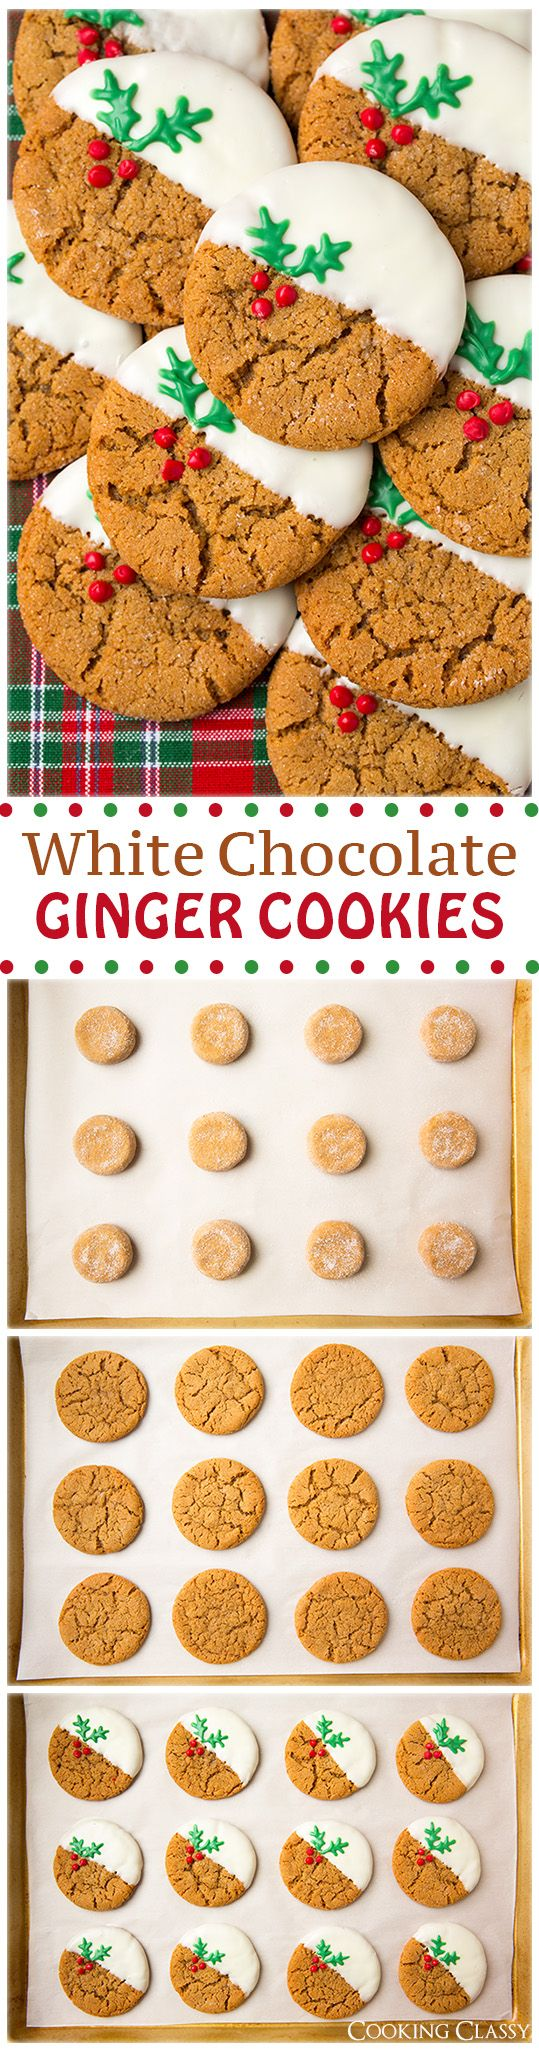 most expensive headphones White Chocolate Dipped Ginger Cookies  soft and chewy    these cookies are SO GOOD   So much gingery flavor and the white chocolate is the perfect compliment